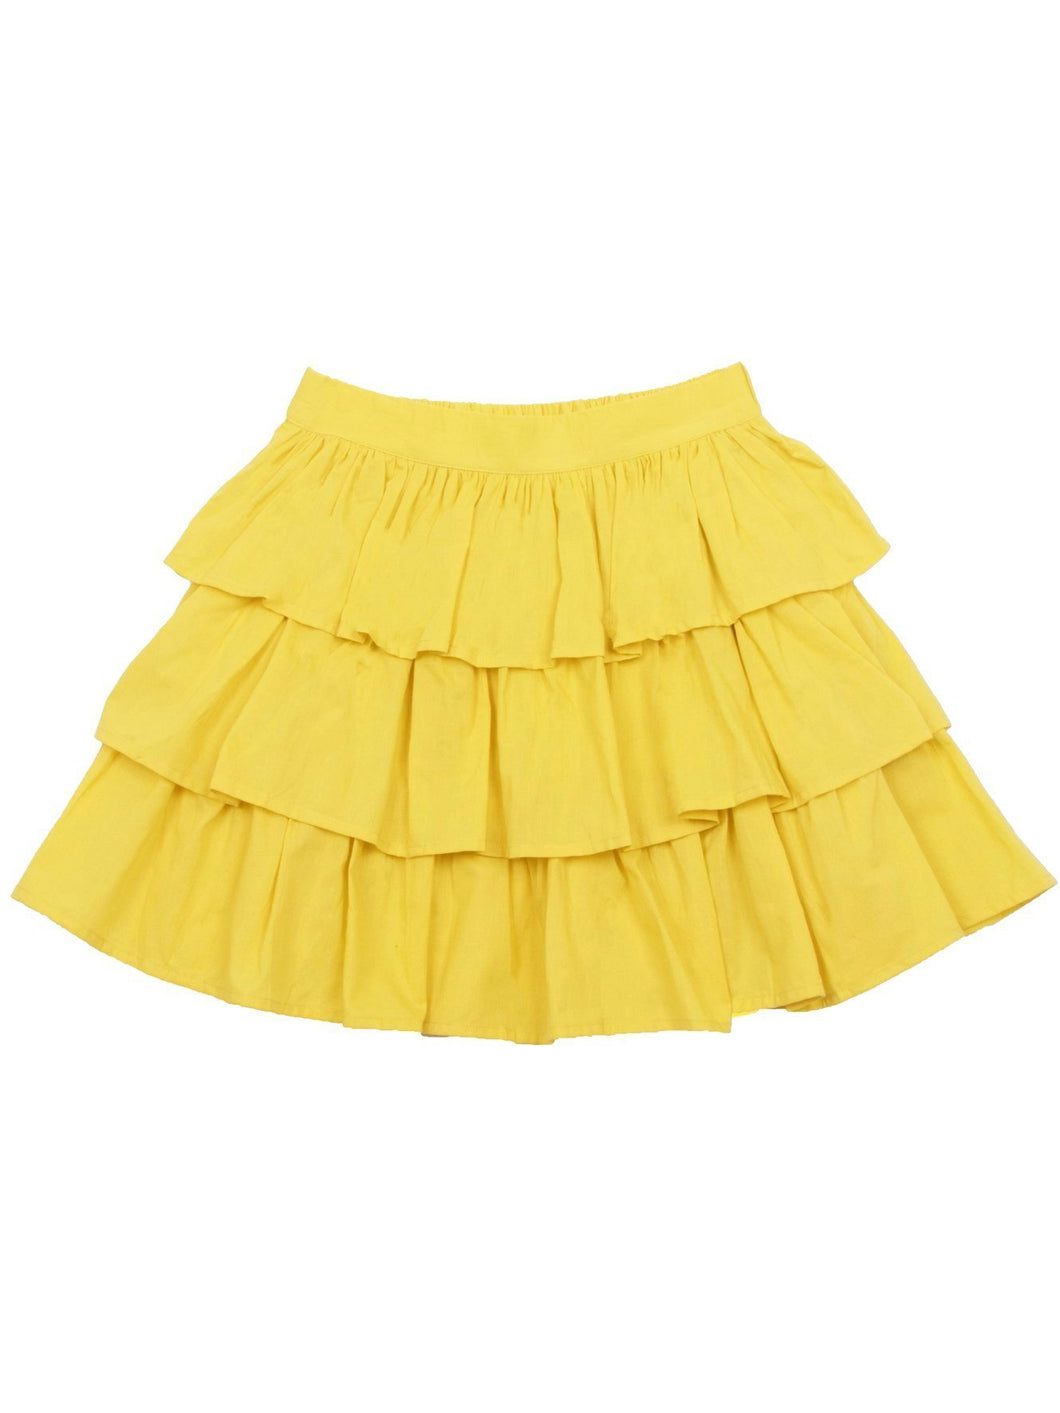 Elif skirt, corn